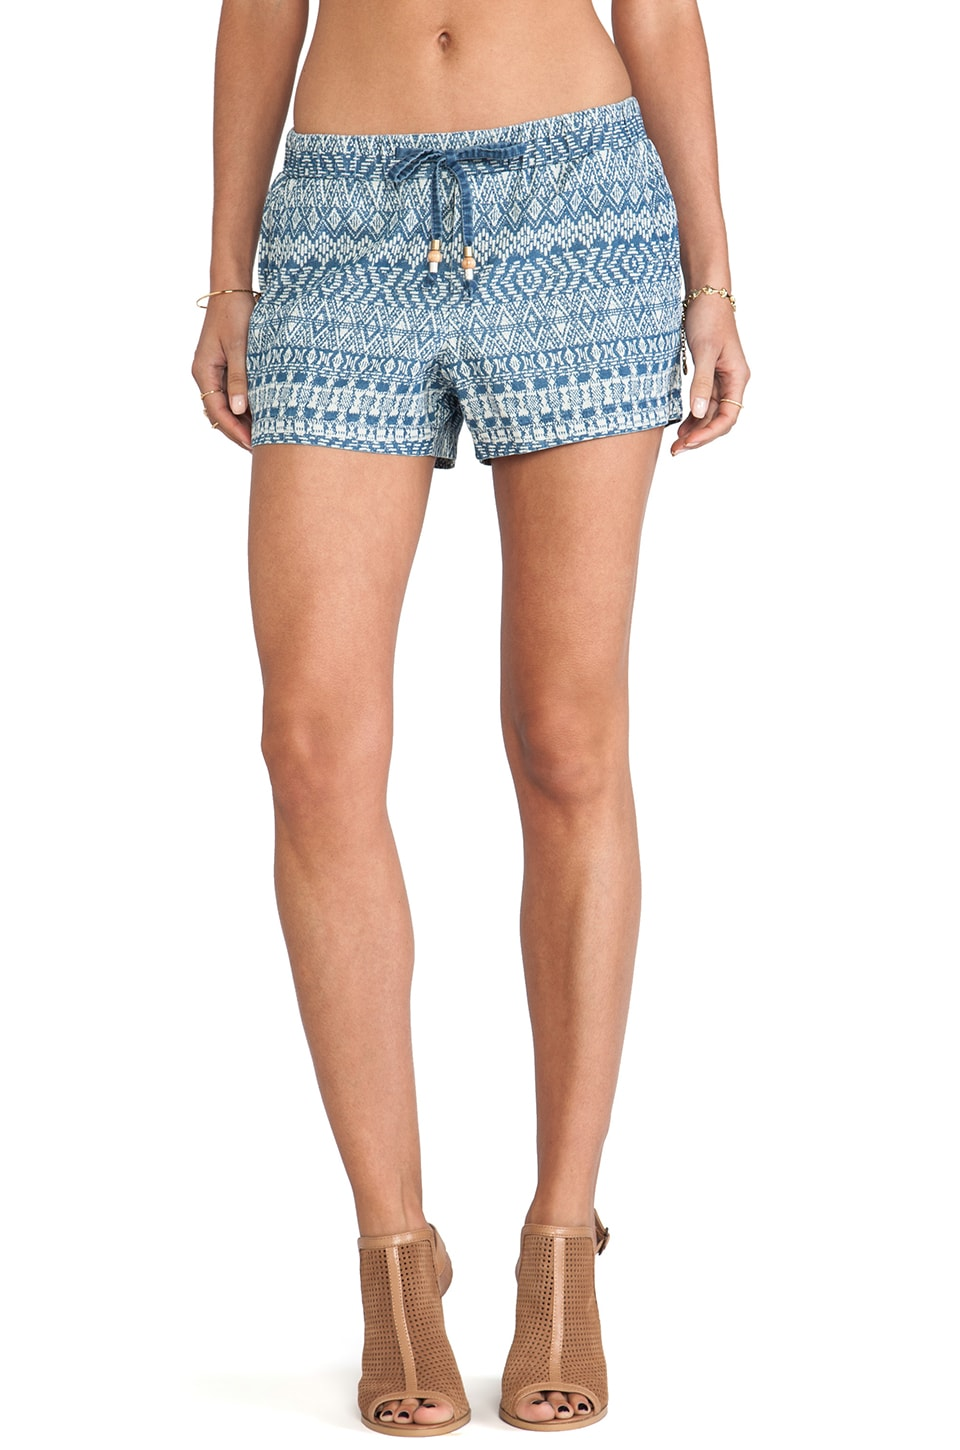 Ella Moss Paz Chambray Shorts in Printed Medium Wash